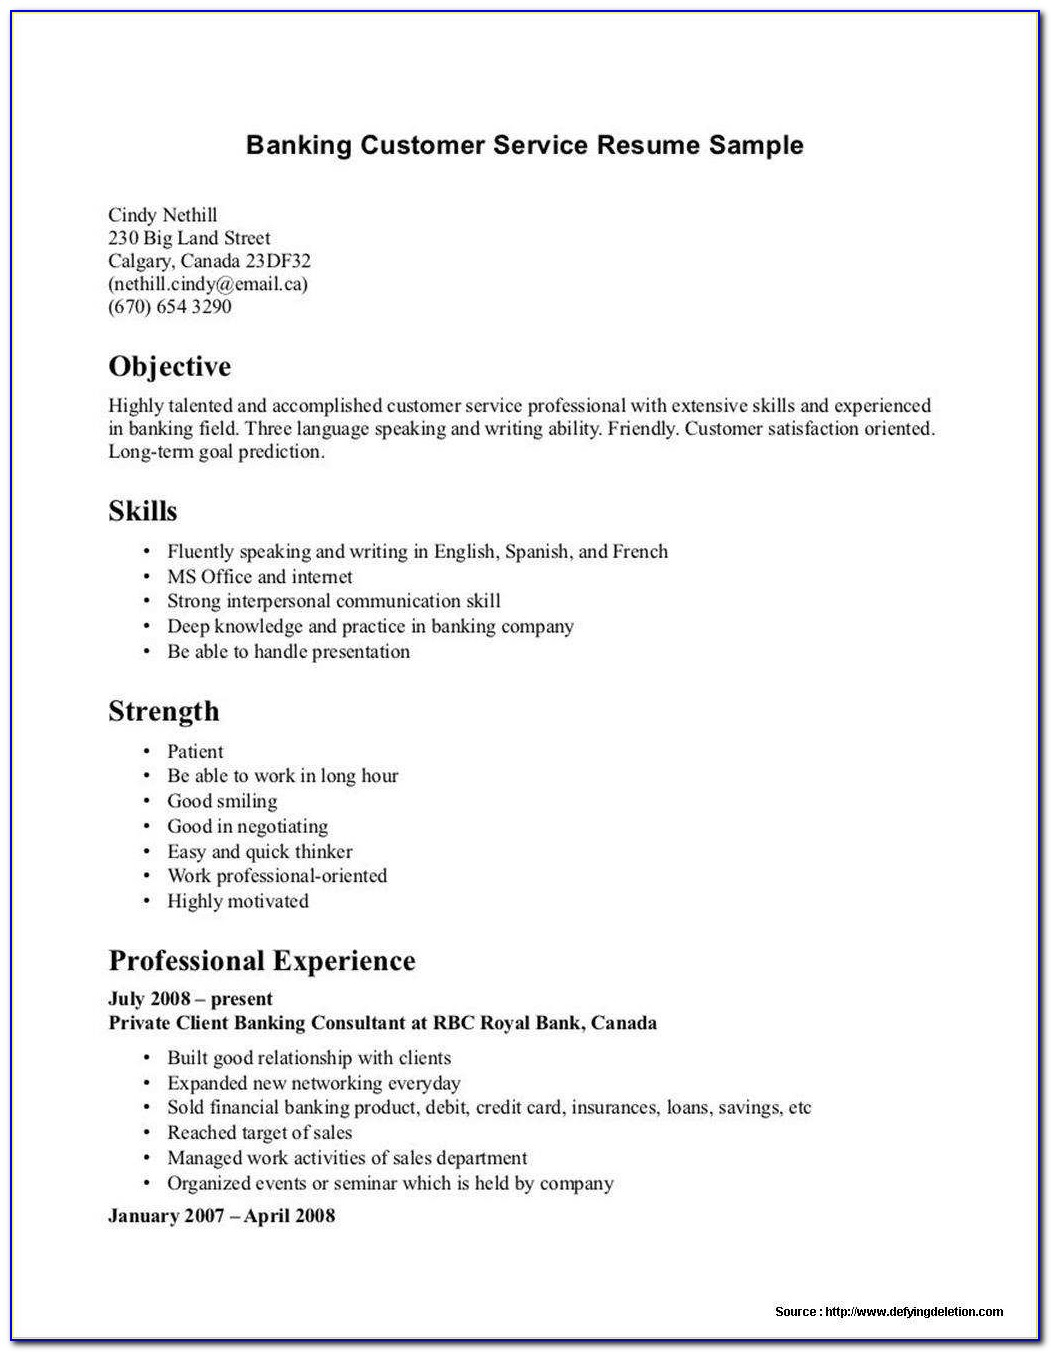 free website templates monster vincegray2014 resume review critique technical writer Resume Monster Free Resume Review